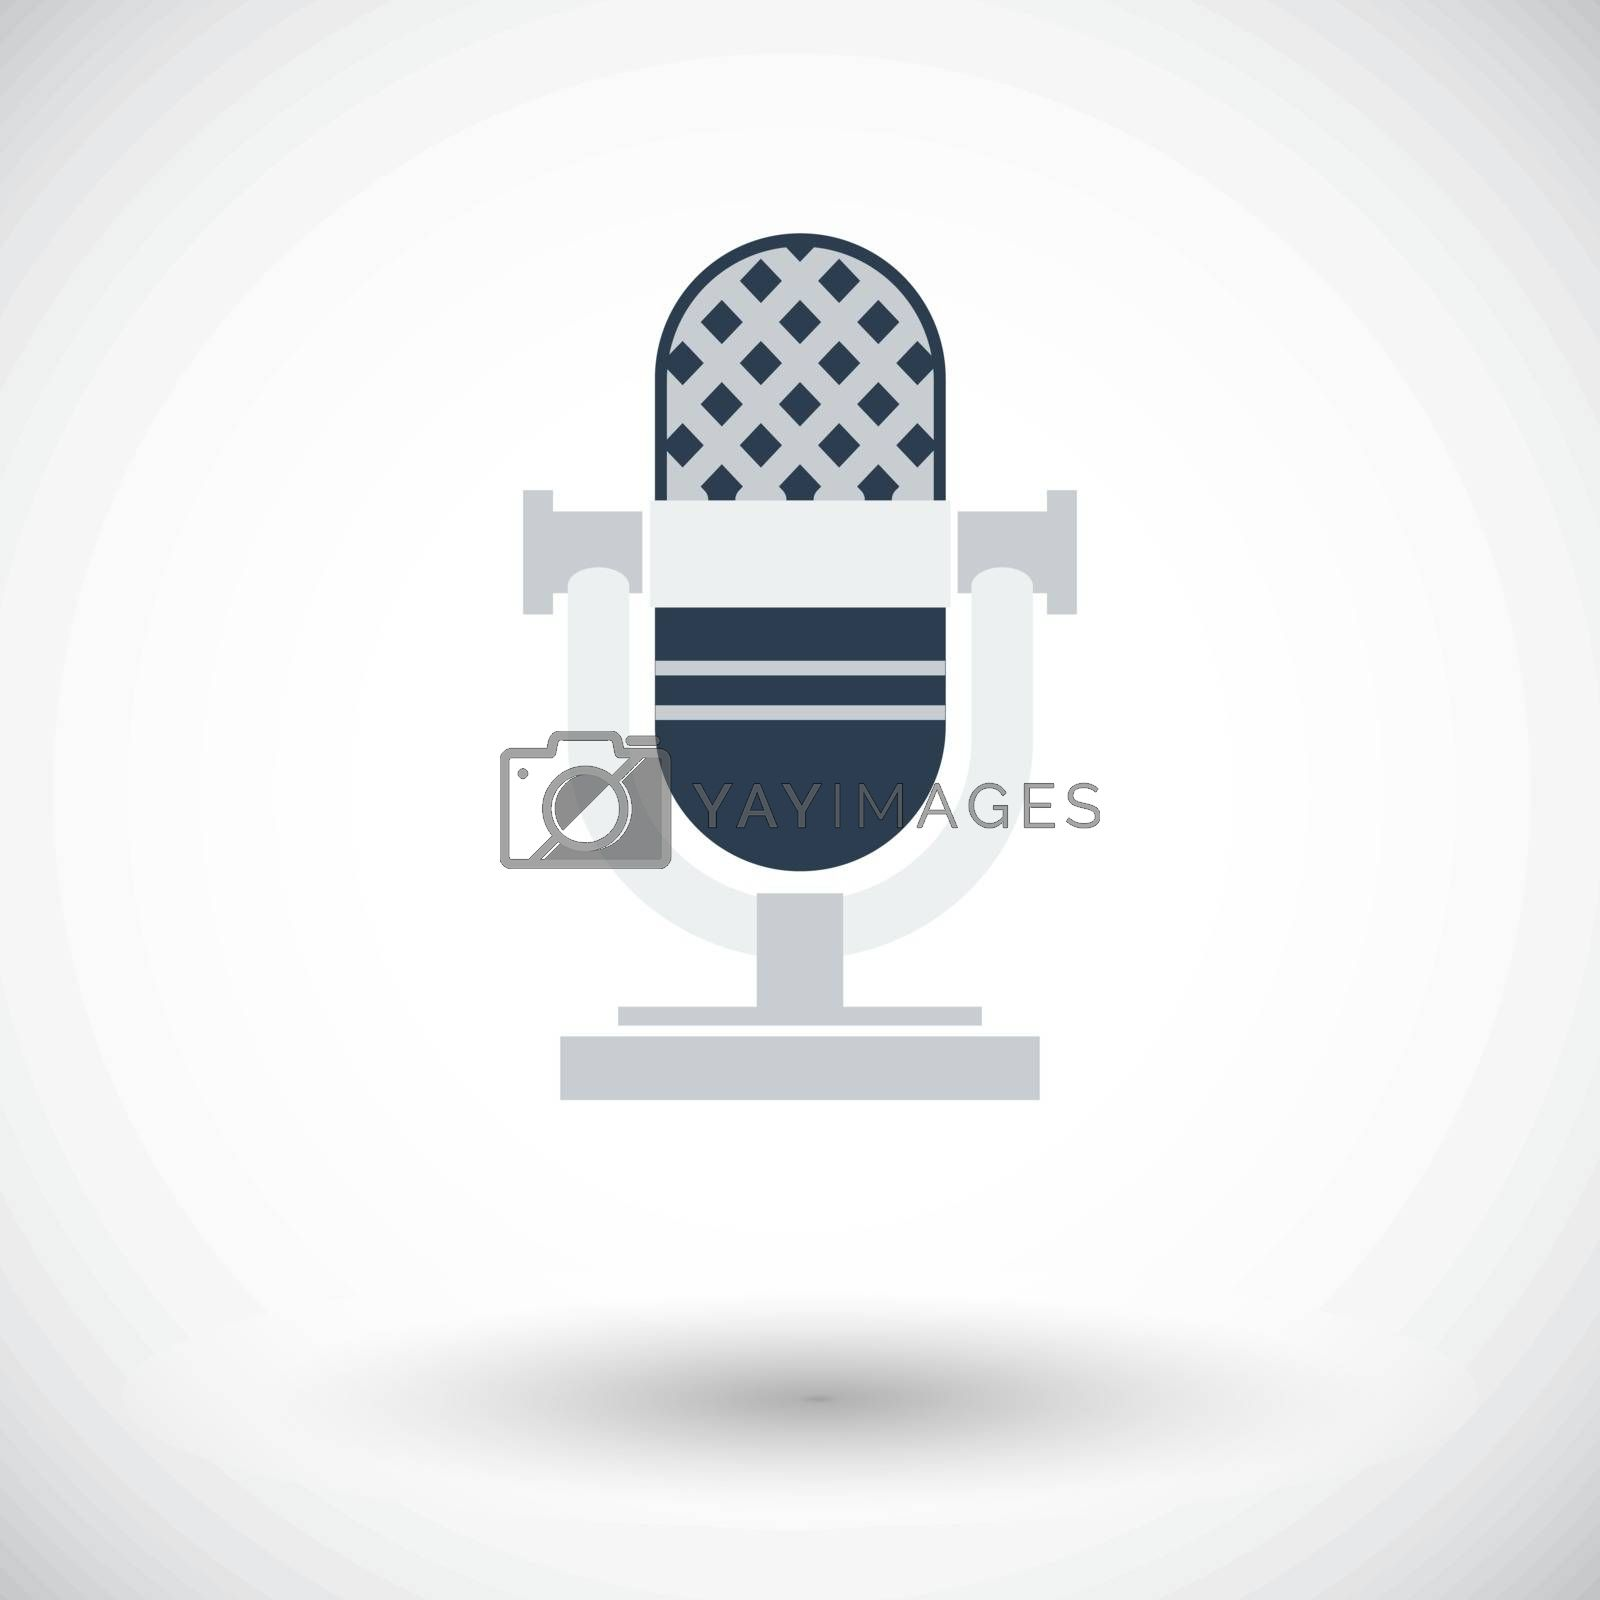 Vintage microphone. Single flat icon on white background. Vector illustration.